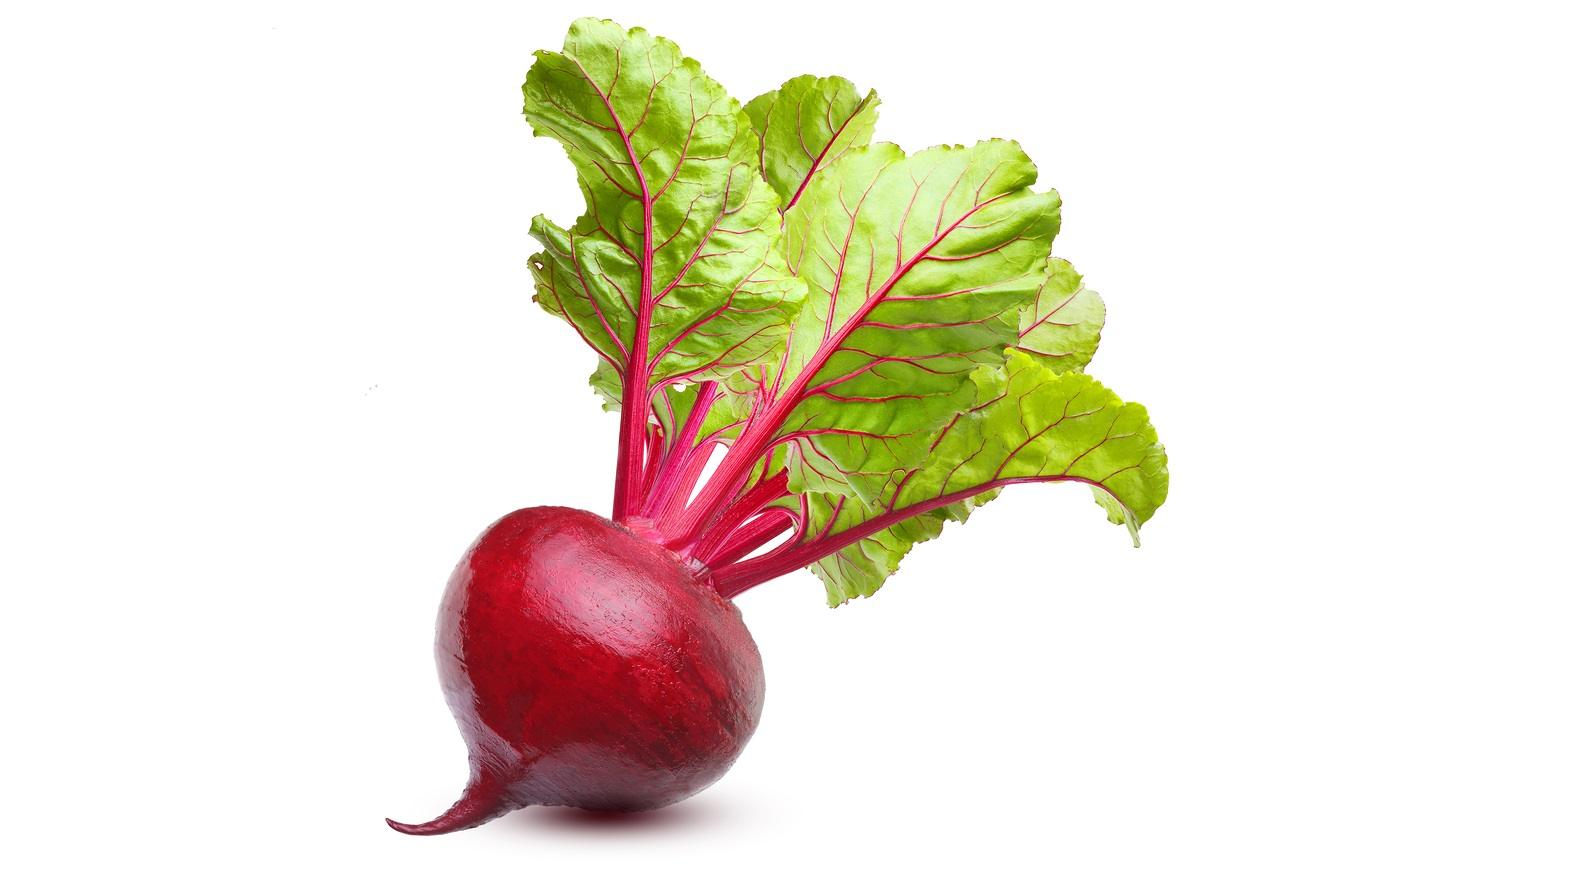 Beetroot with leaves, fresh whole beet isolated on white backgro